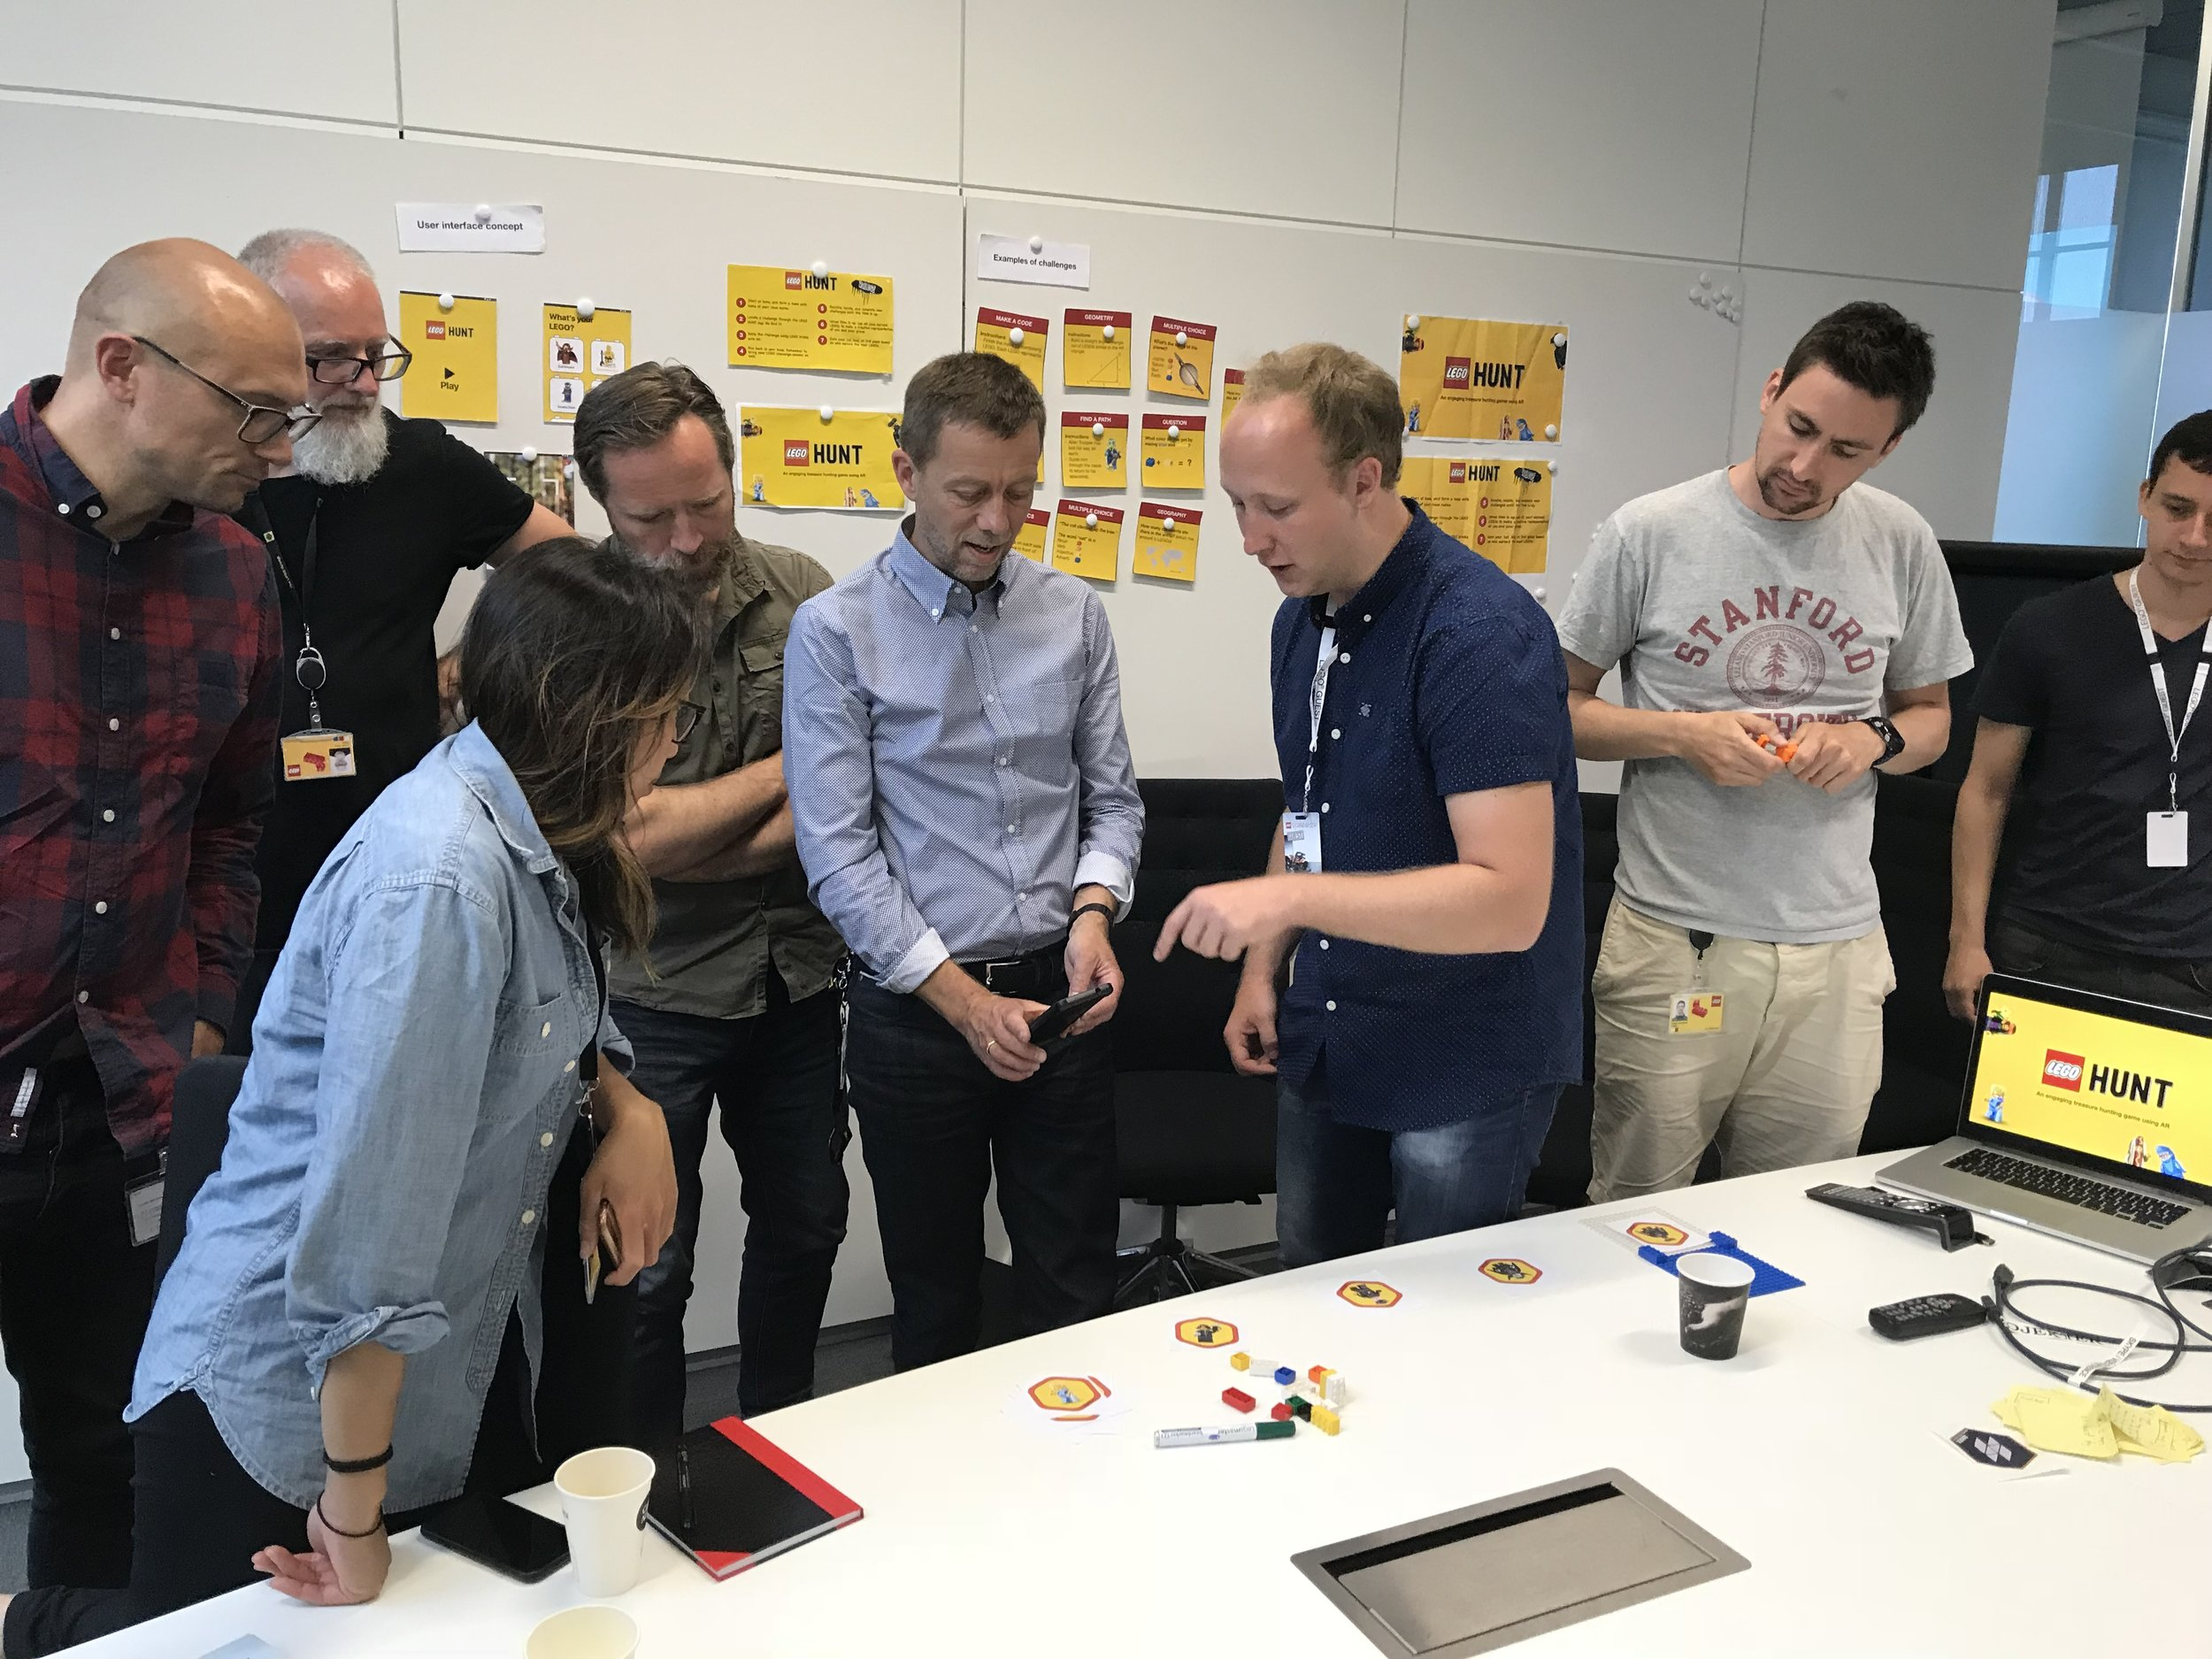 Nicolai demonstrating our prototype to the Front-End Innovation team including their Vice-President.